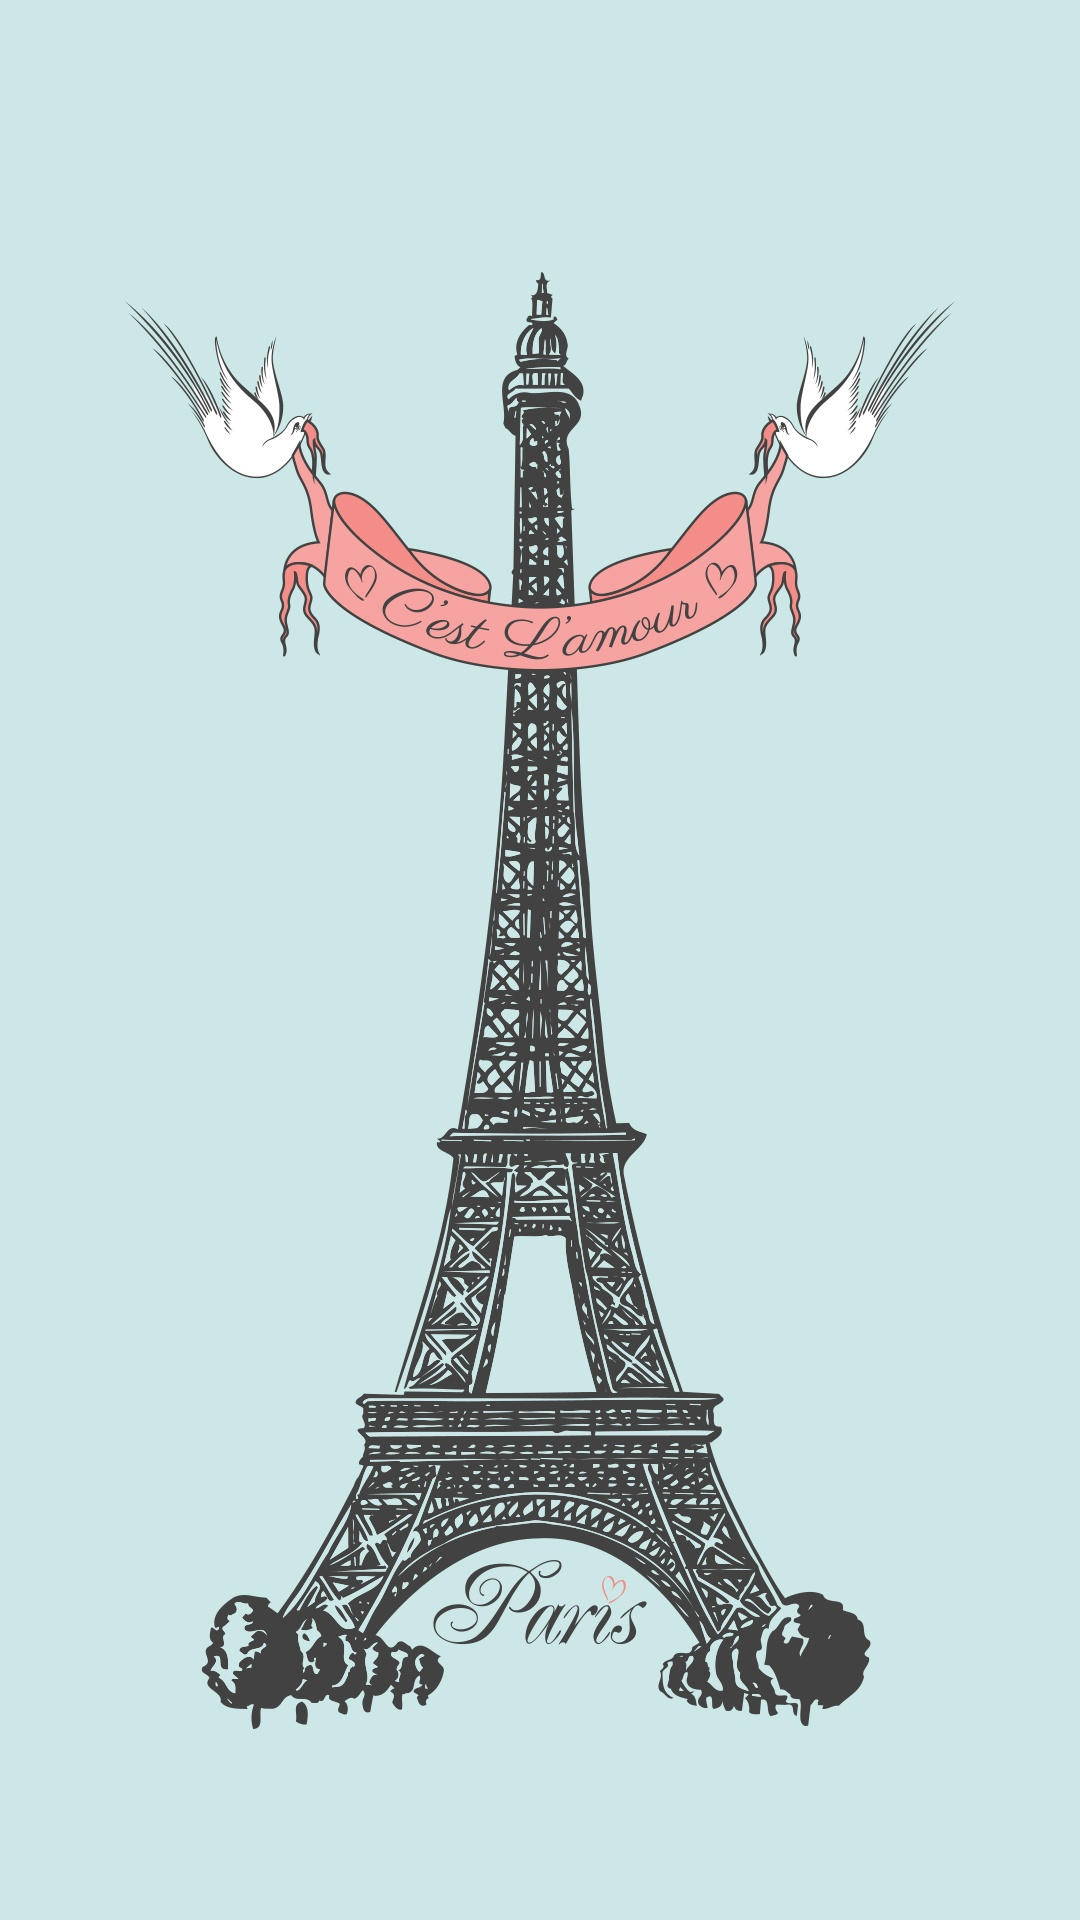 Eiffel-Tower-Vector-Art-Tap-to-see-more-Eiffel-Tower-Art-iPhone-backgrounds-fondos-wallpaper-wp3605327